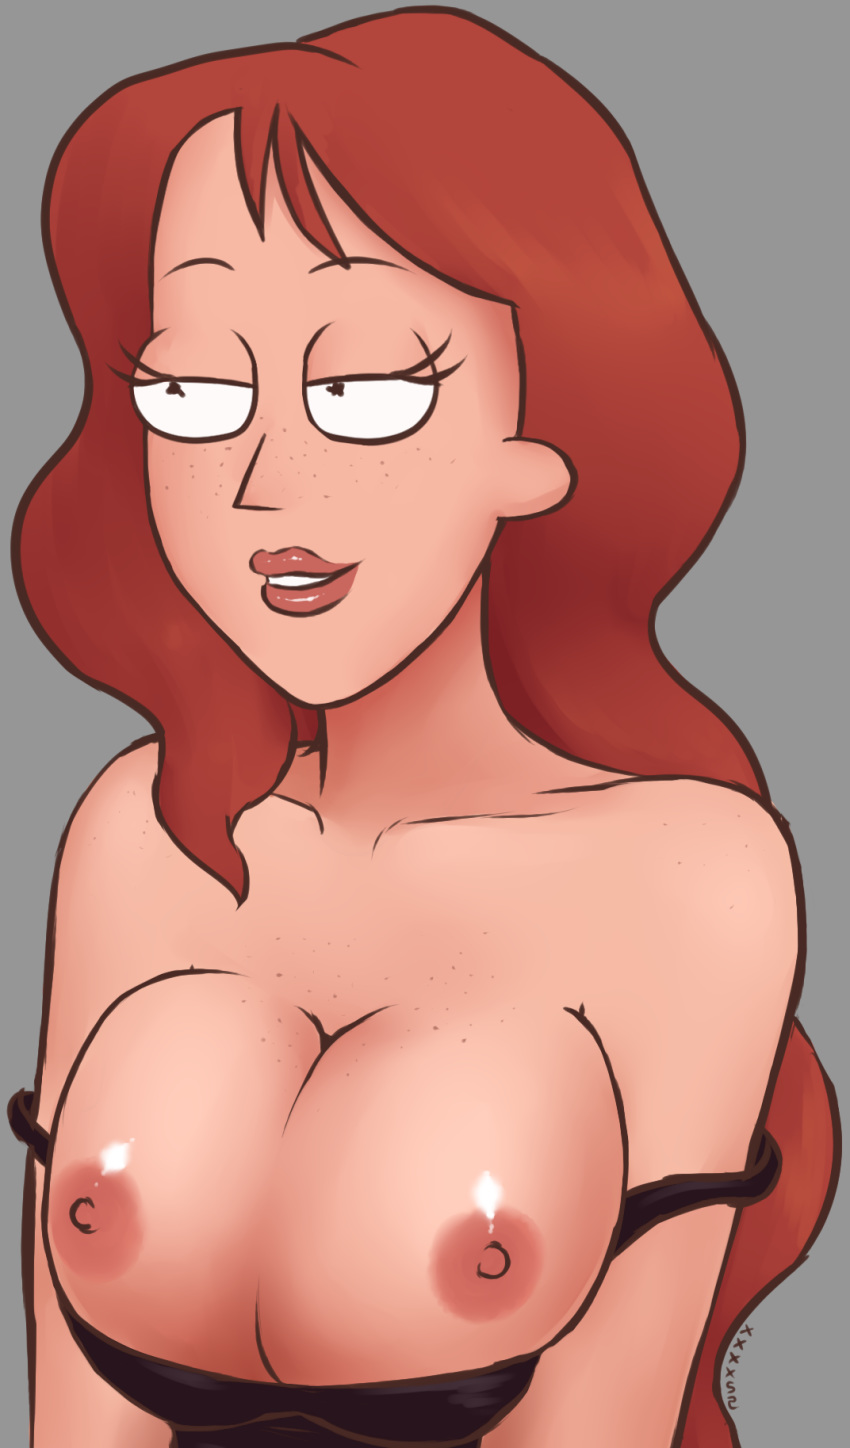 rick summer tits morty and Stuff to jerk off to